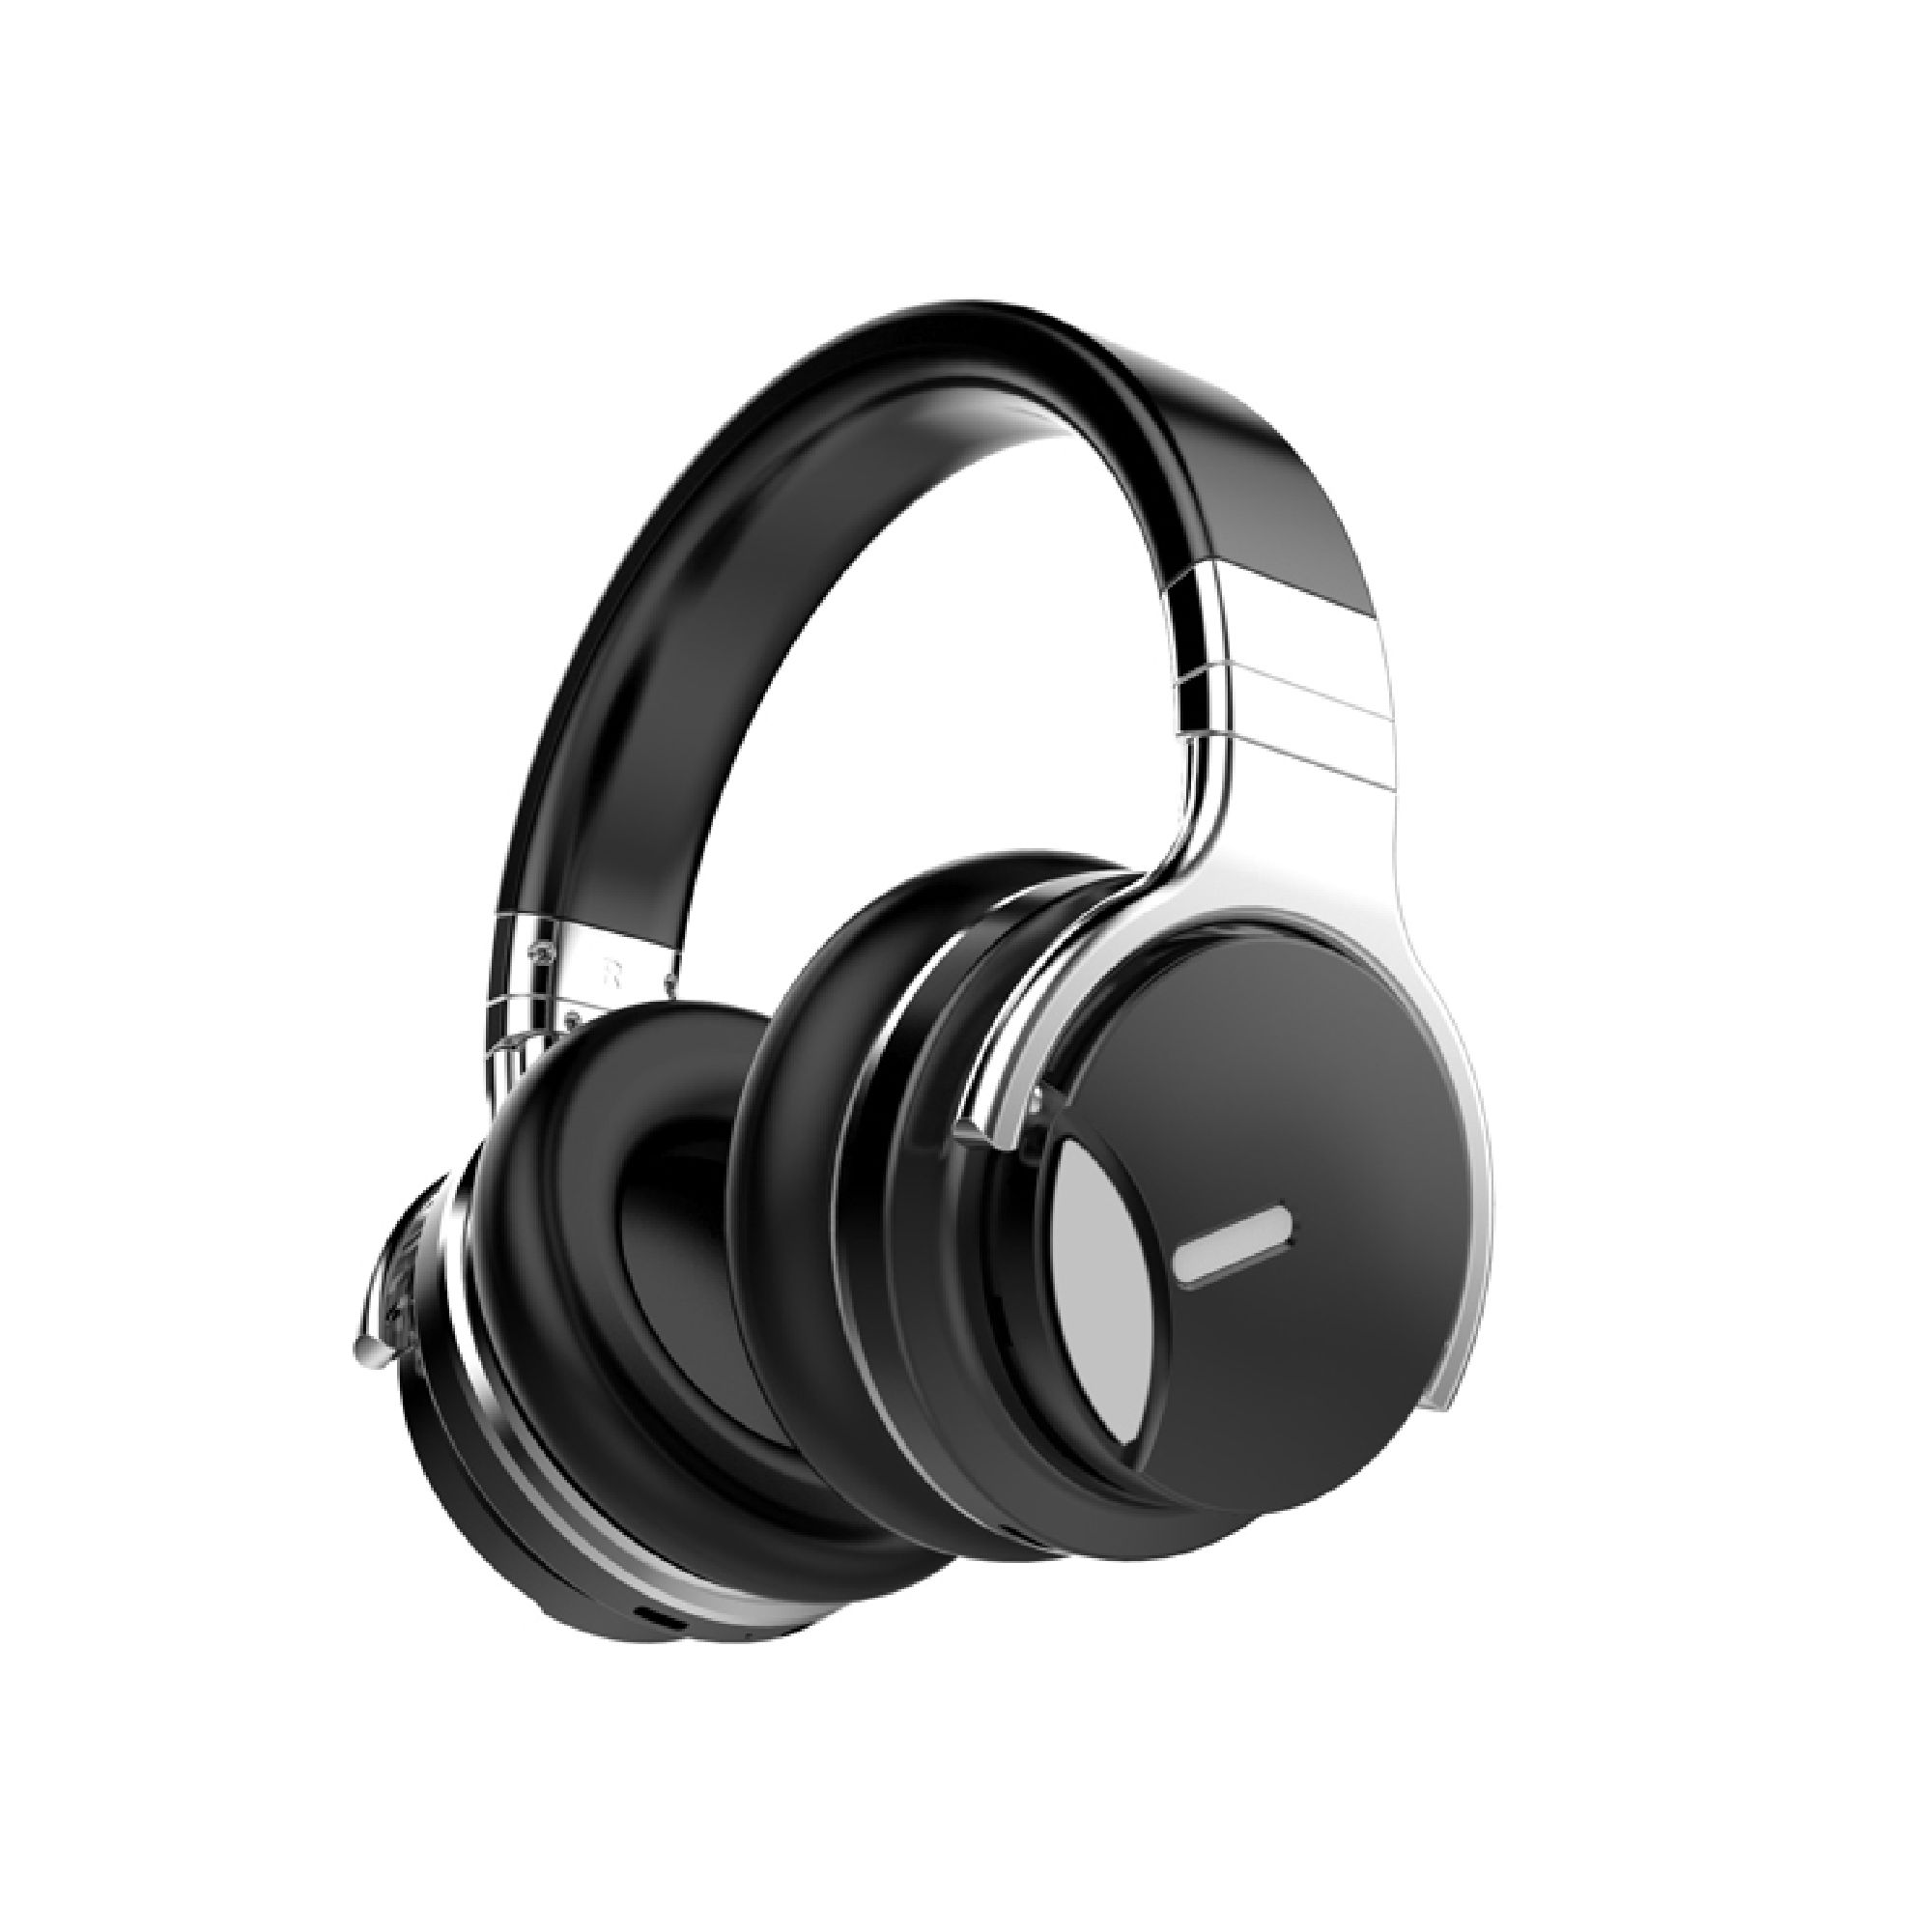 COWIN E7 MD Active Noise Cancelling Bluetooth Headphones with Microphone Deep Bass Wireless Headphones Over Ear, Comfortable Protein Earpads, 30H Playtime for Travel Work TV Computer IPhone